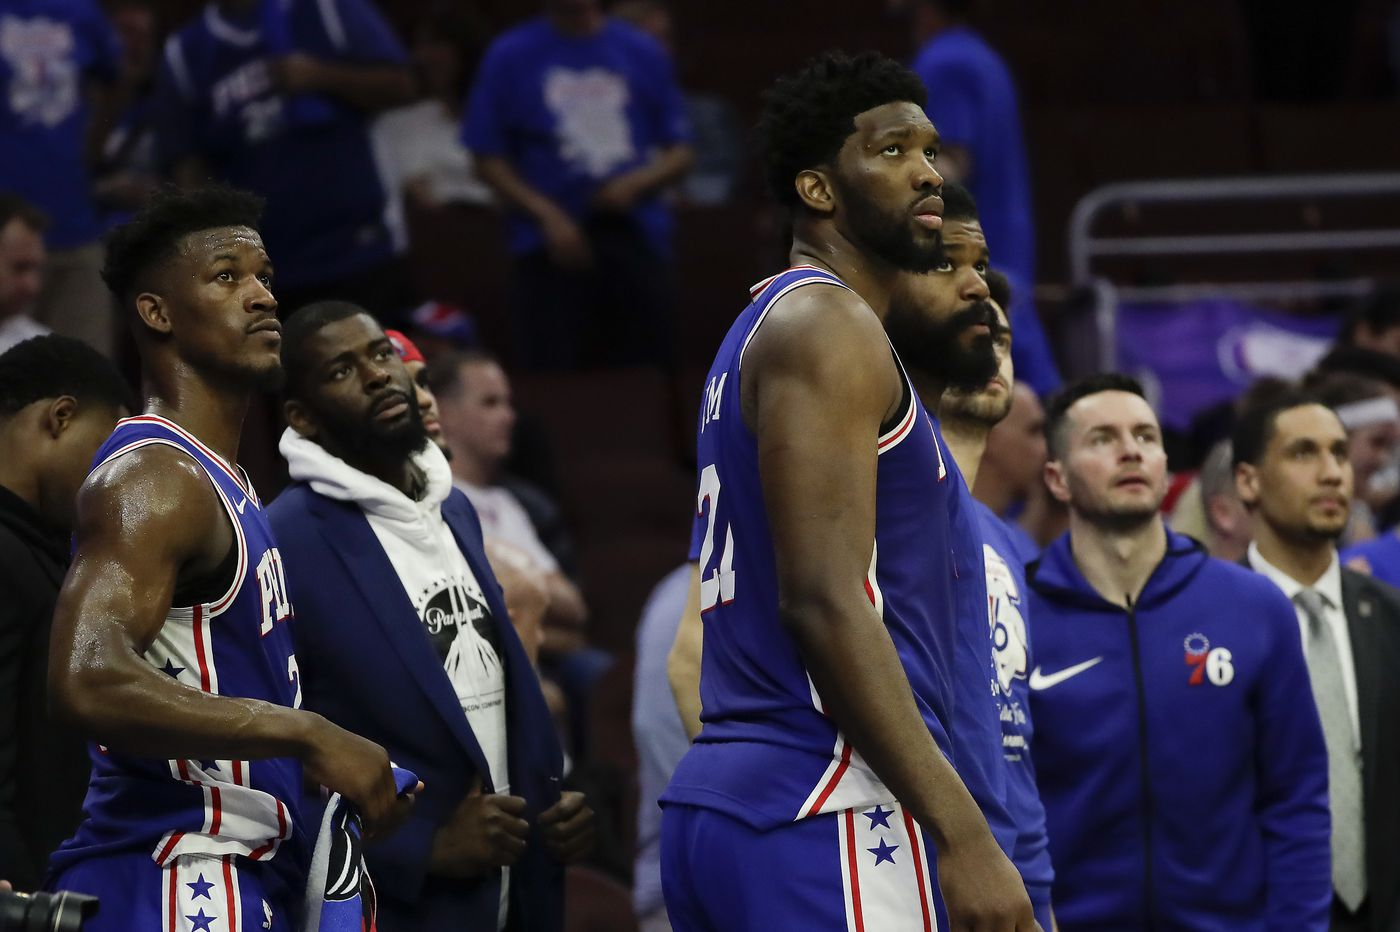 Sixers podcast: Saturday was a bad look for Philly's team